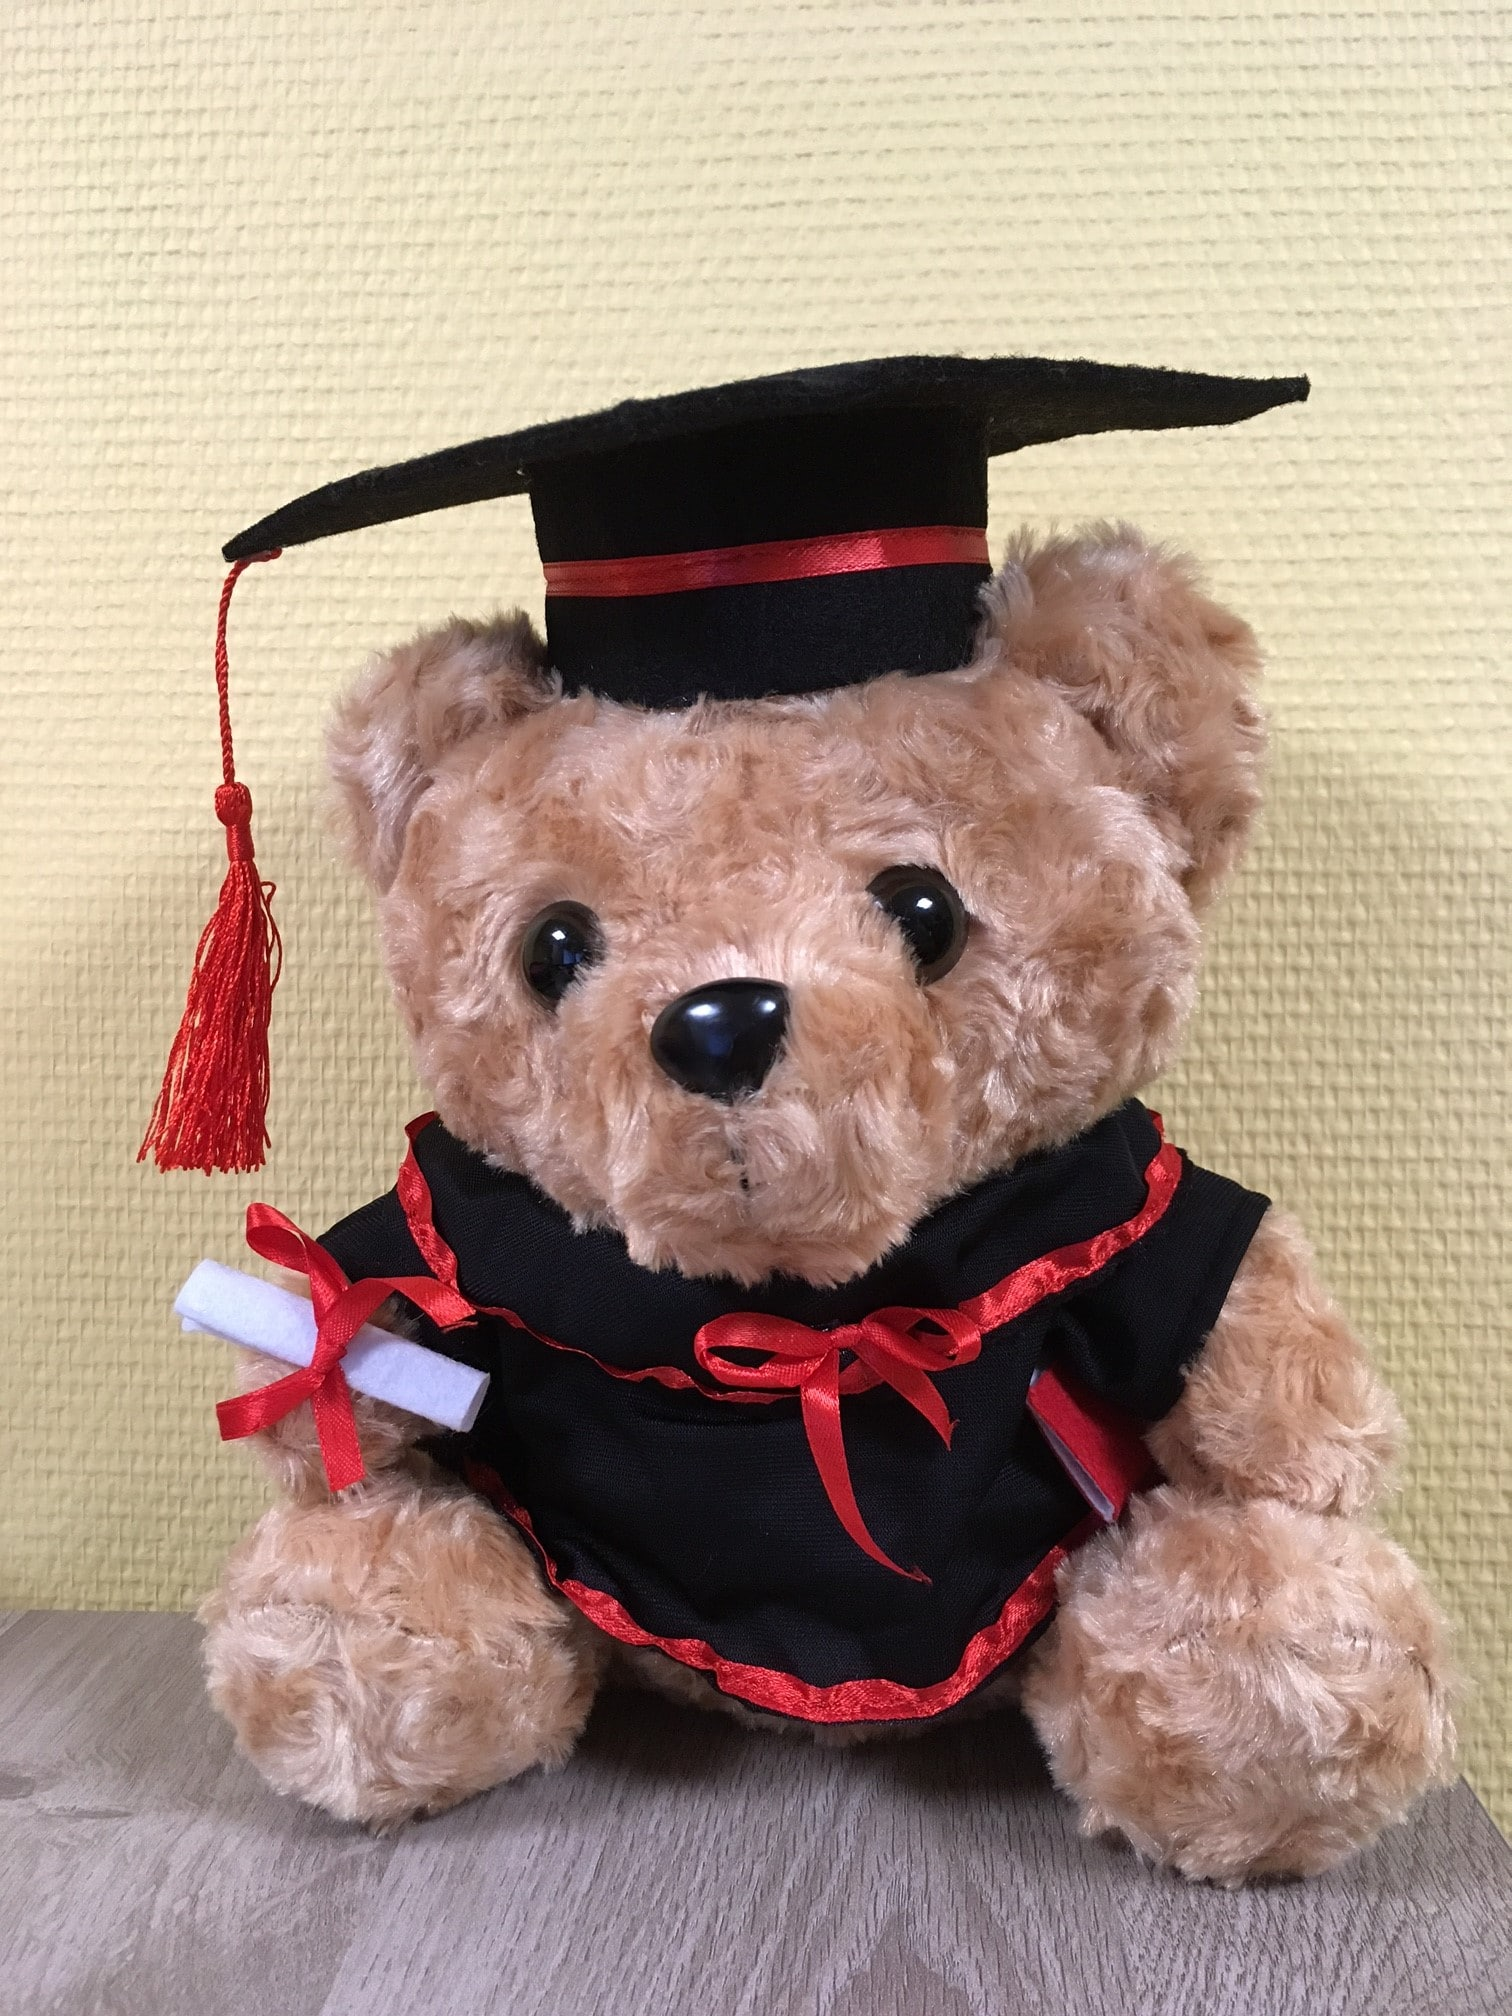 Graduation Teddy Bear  Diplomissimo. Instagram Cut Out Template. 100 Words Every High School Graduate Should Know. Birthday Graphics For Facebook. Cuny Graduate Center Portal. The Citadel Graduate College. Goal Statement Examples For Graduate School. Music Business Cards Template. Wedding Table Numbers Template